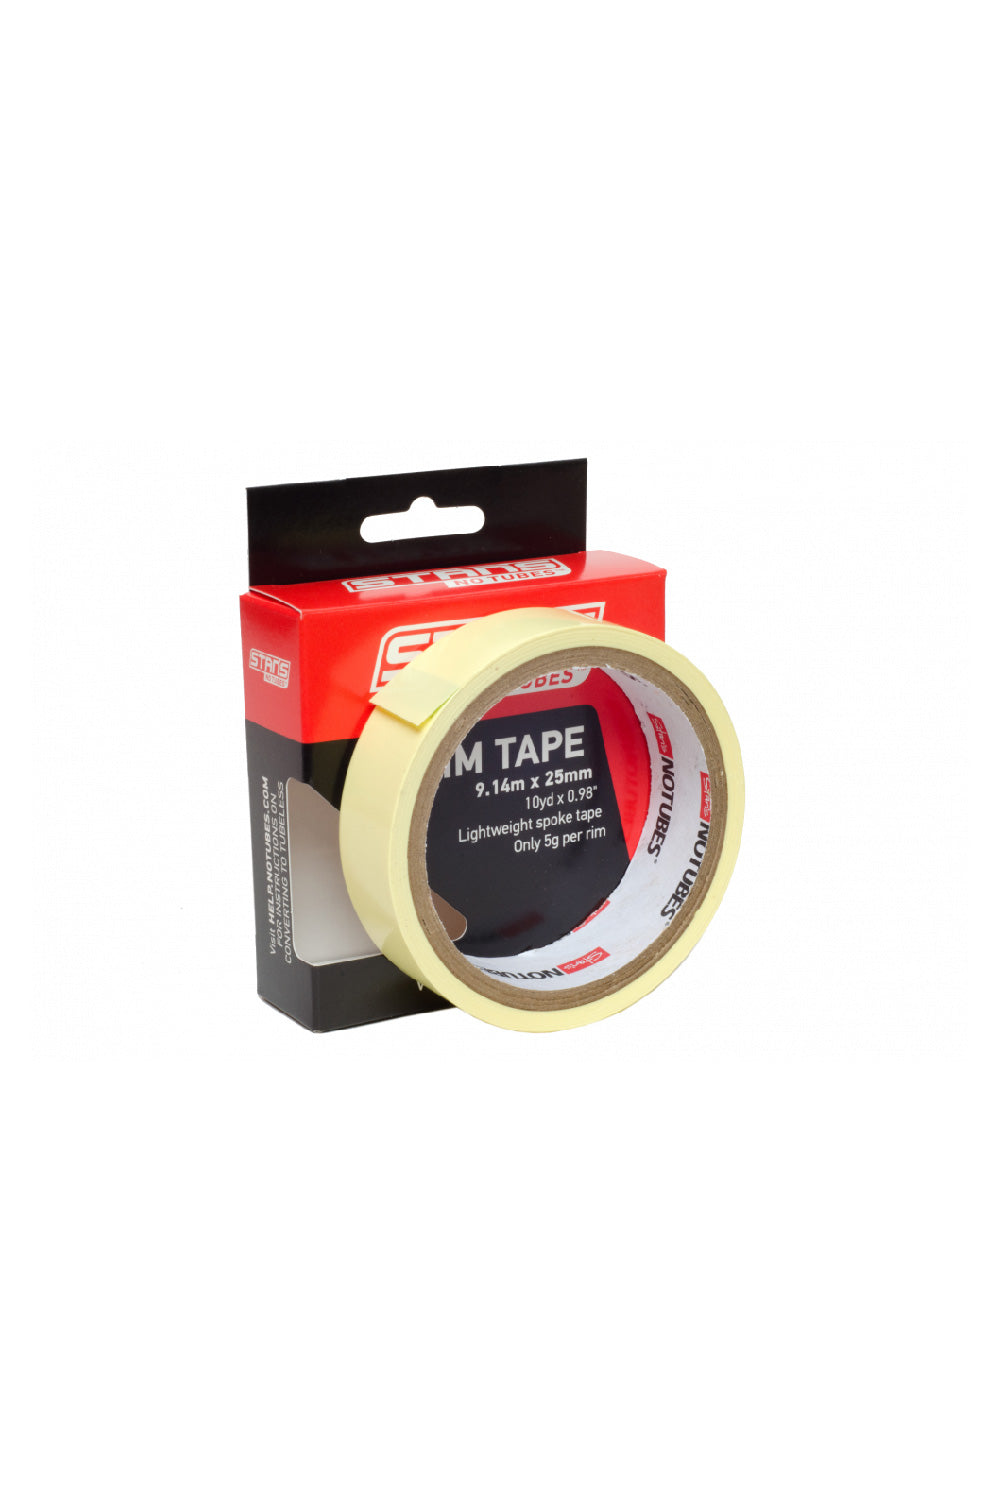 Stans Rim Tape 10Yard X 25MM